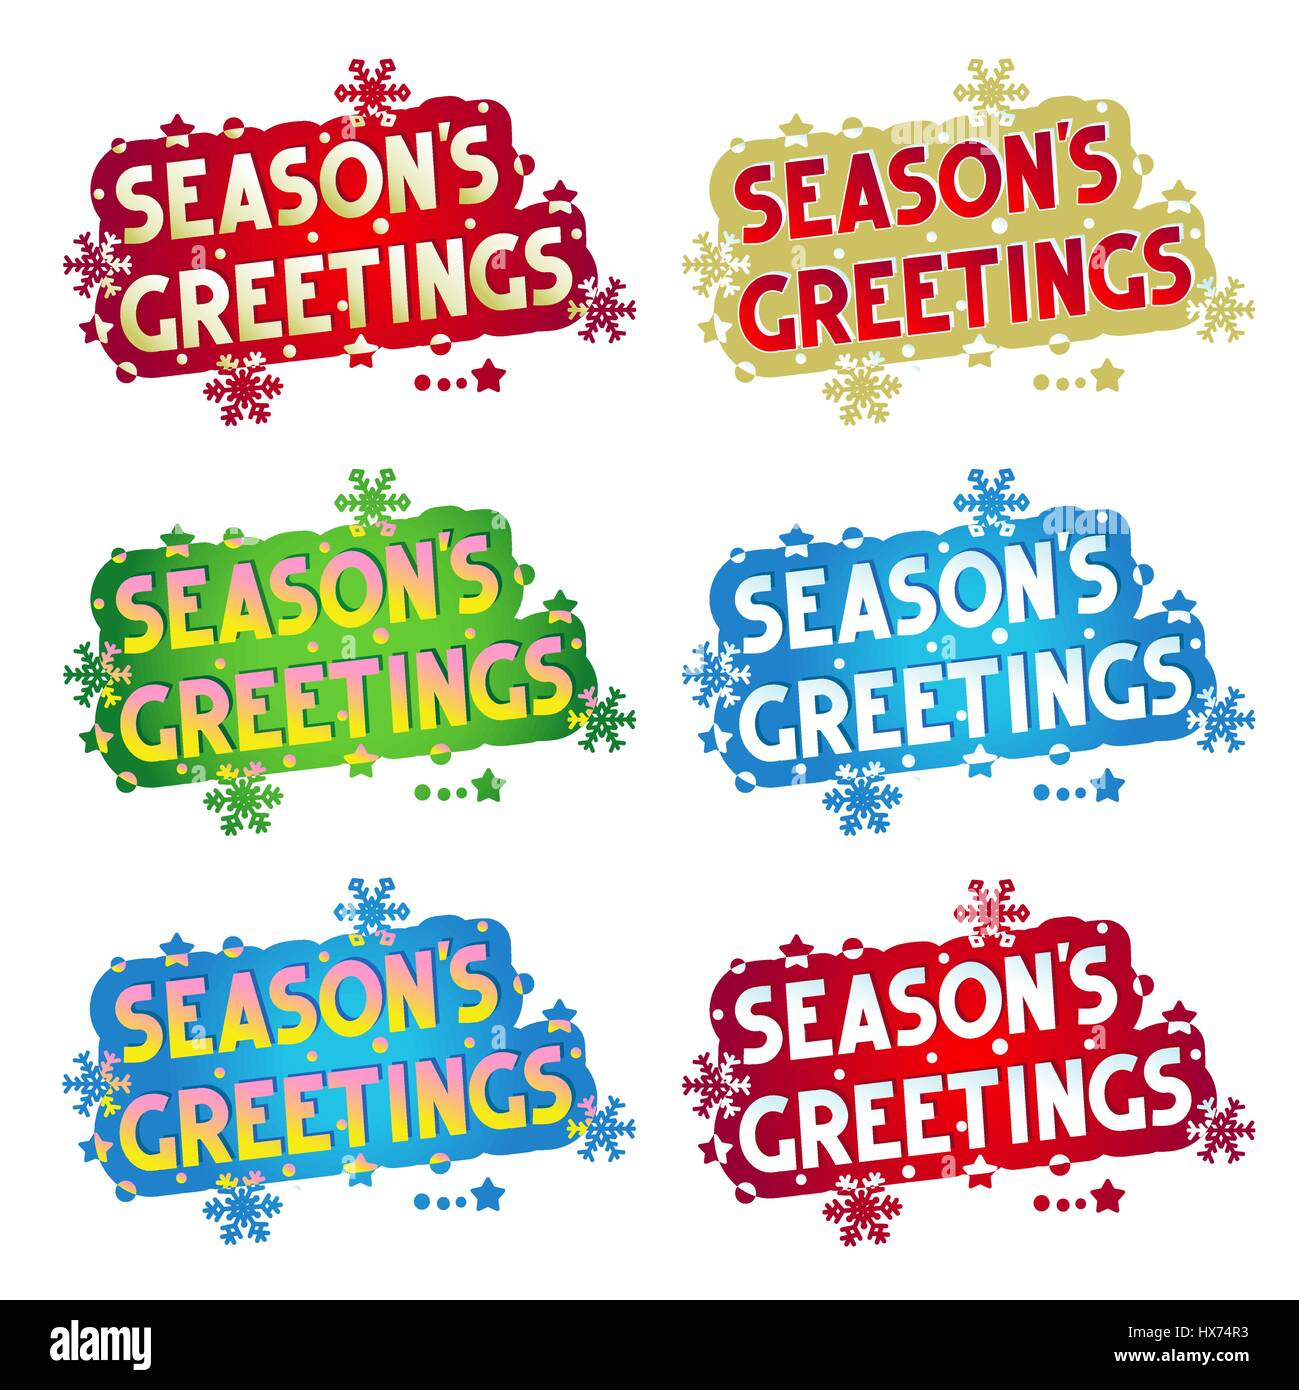 Happy new year greetings wishes stock photos happy new year seasons greetings set of six various colors greetings design elements for cards m4hsunfo